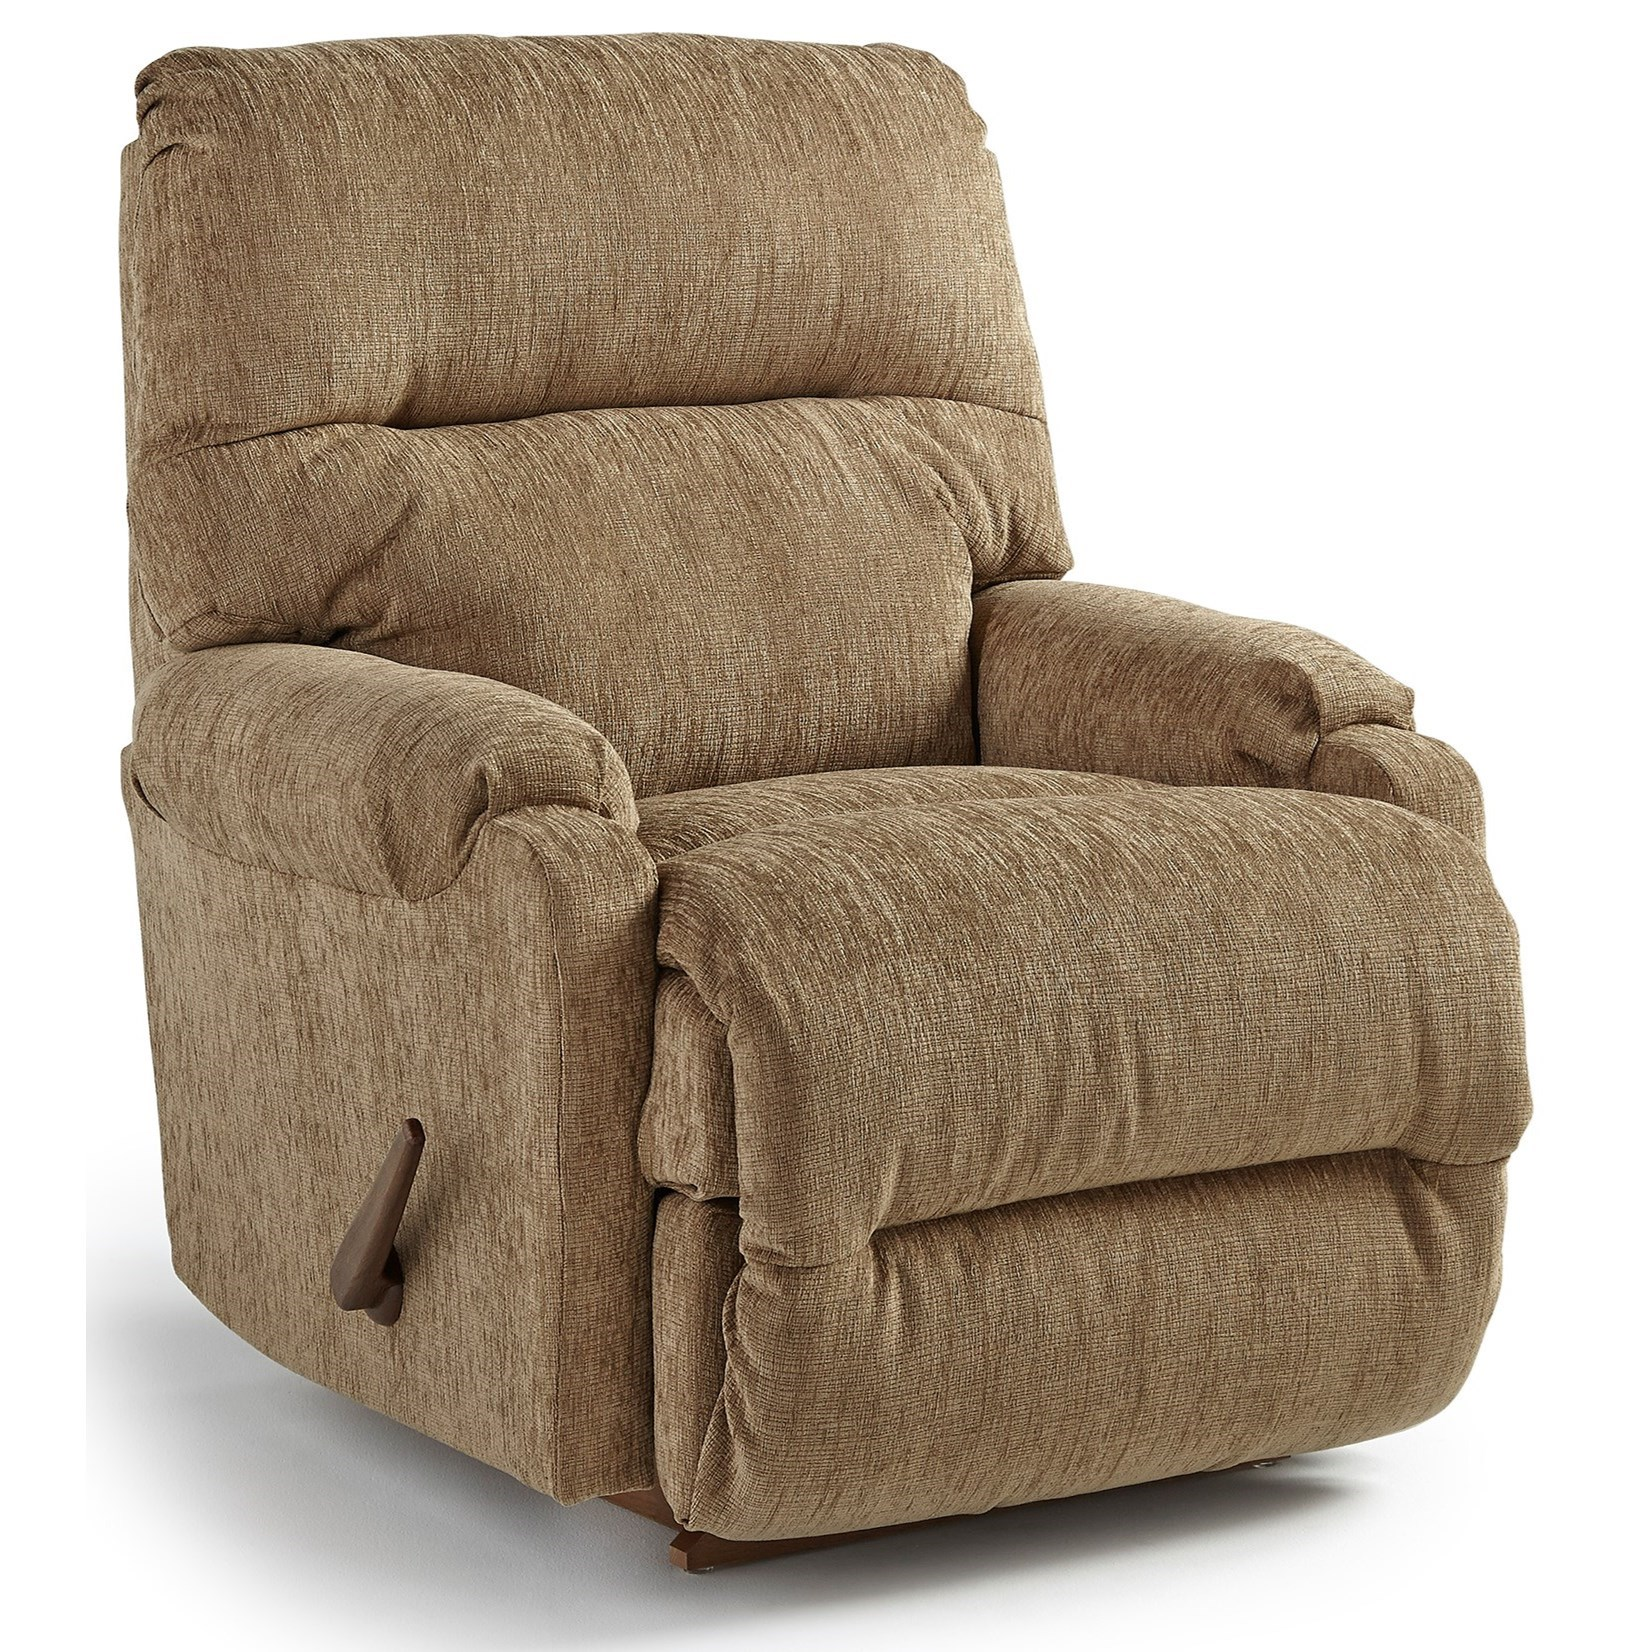 Cannes Wallhugger Recliner by Best Home Furnishings at Baer's Furniture